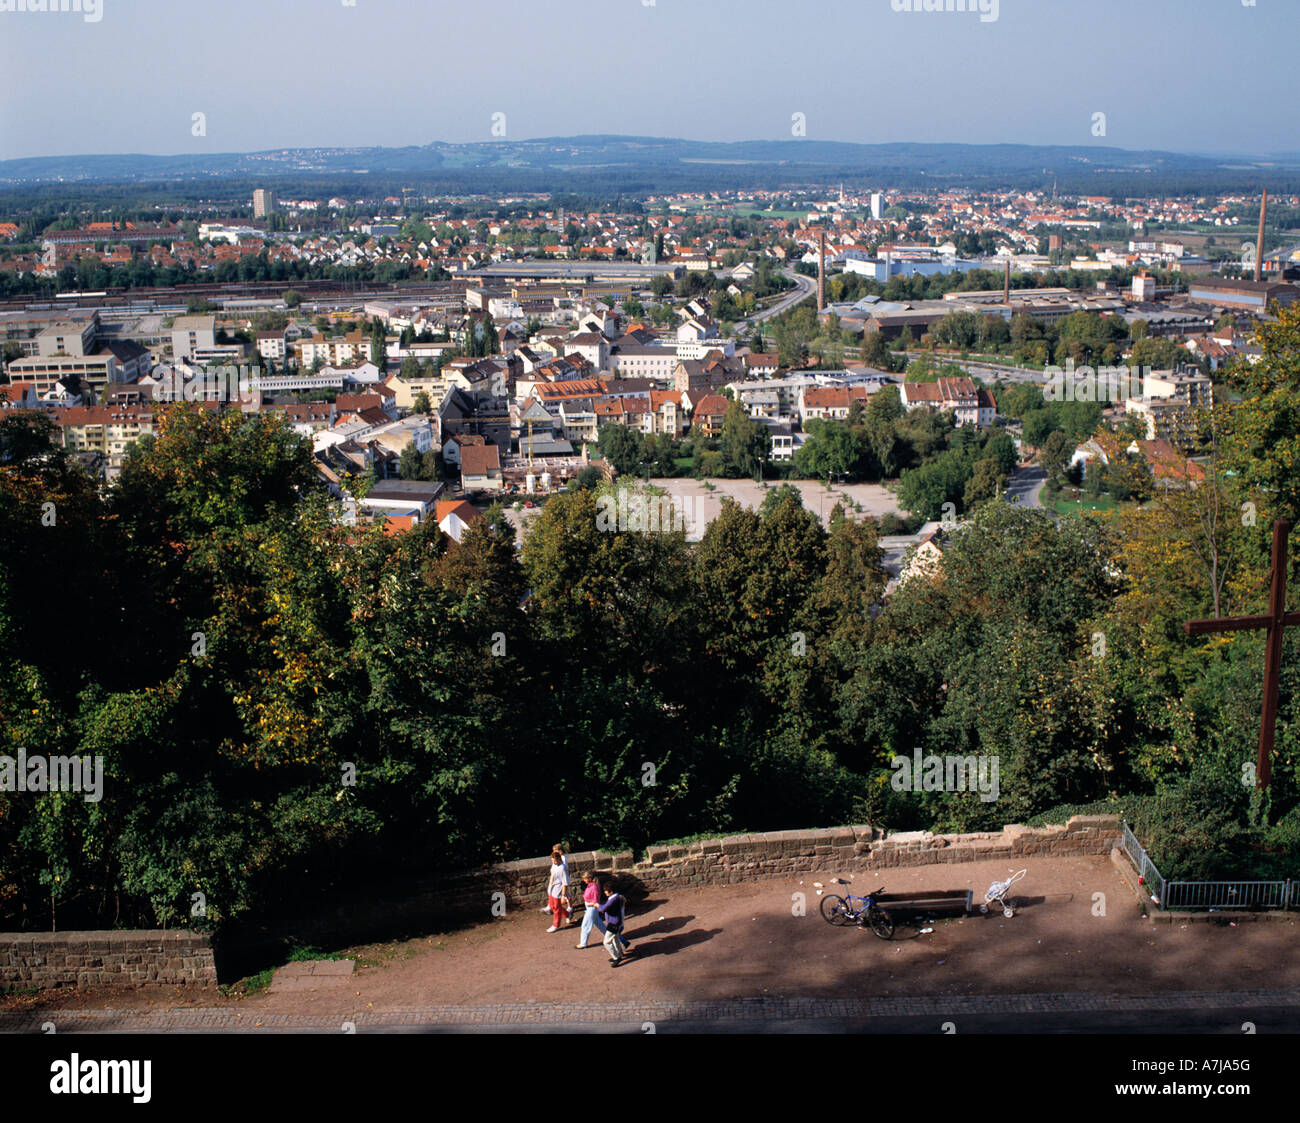 saarland aerial view stock photos saarland aerial view stock images alamy. Black Bedroom Furniture Sets. Home Design Ideas